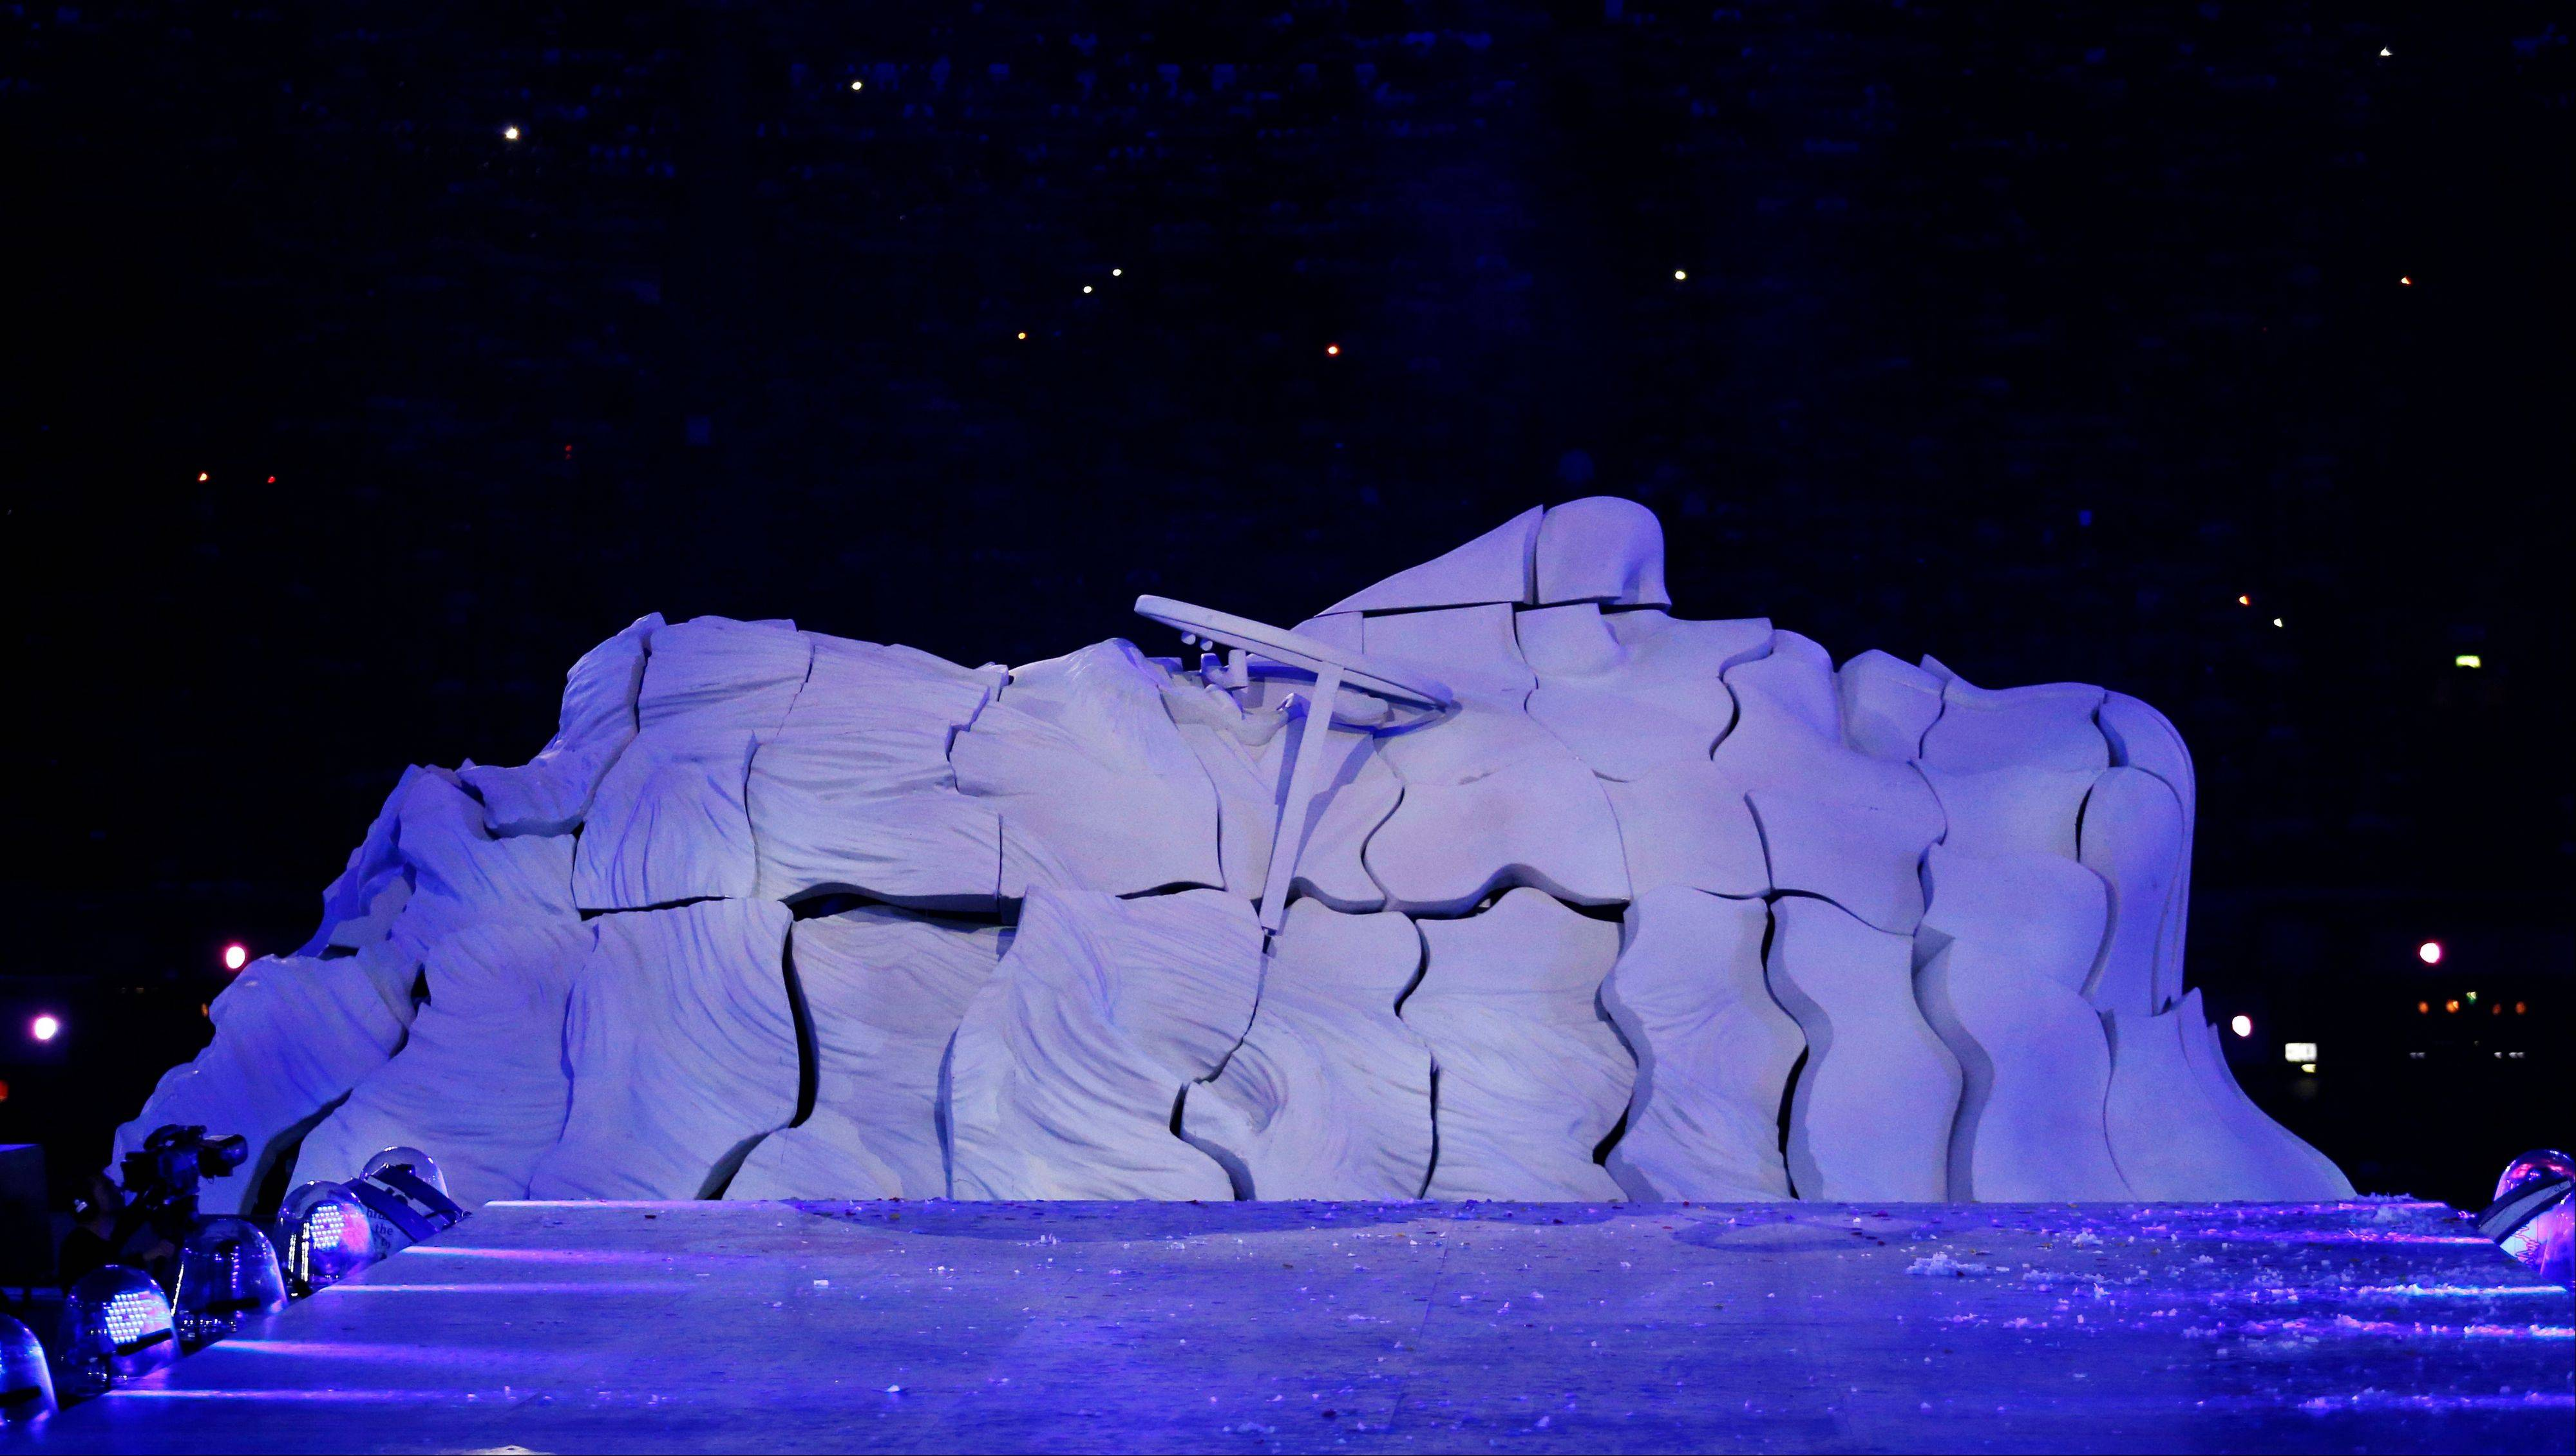 A sculpture in the shape of late Beatles band member John Lennon is seen during the Closing Ceremony at the 2012 Summer Olympics.